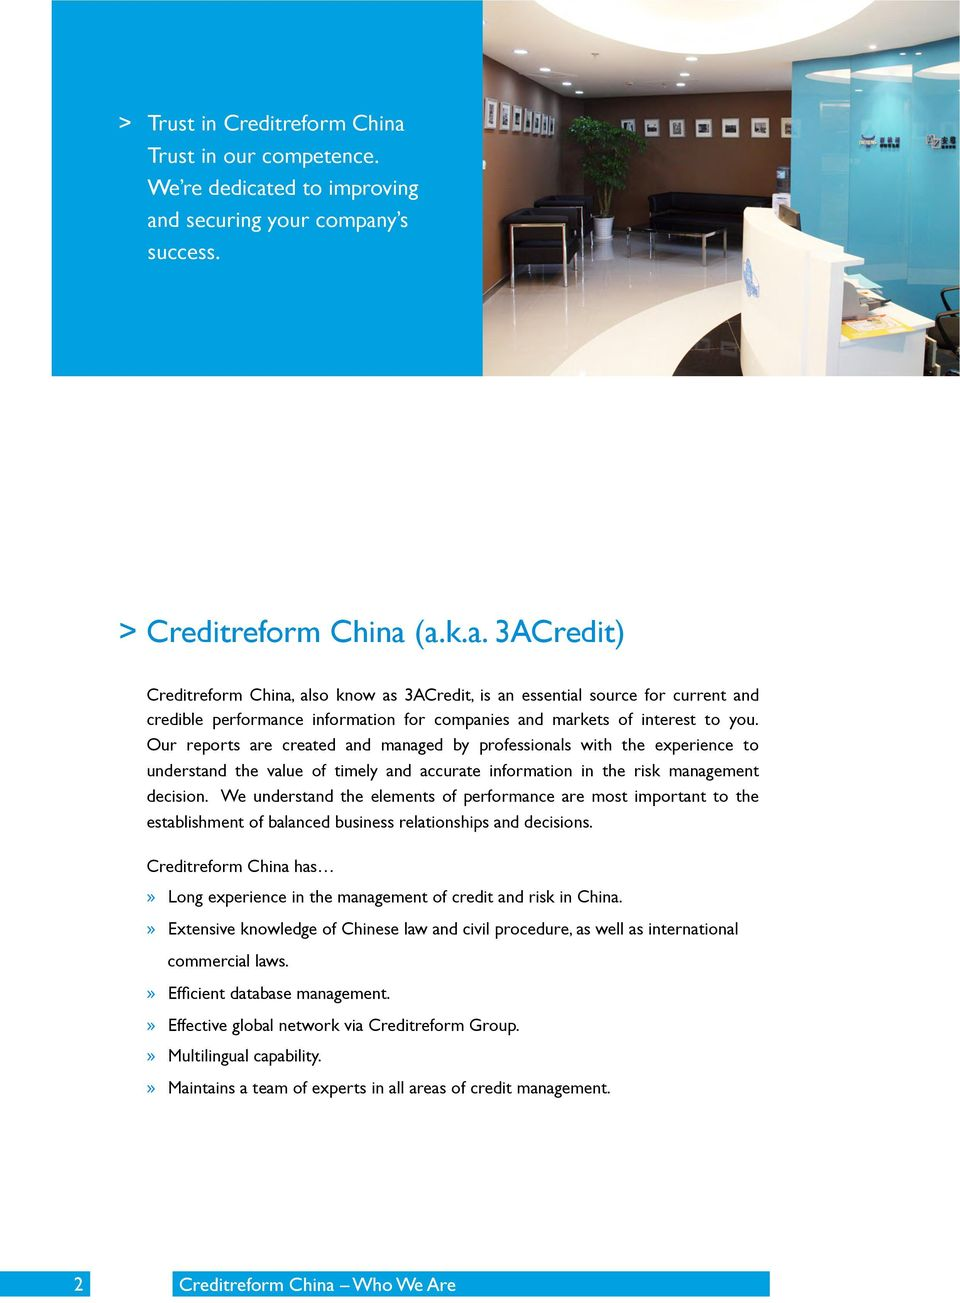 ed to improving and securing your company s success. > Creditreform China (a.k.a. 3ACredit) Creditreform China, also know as 3ACredit, is an essential source for current and credible performance information for companies and markets of interest to you.